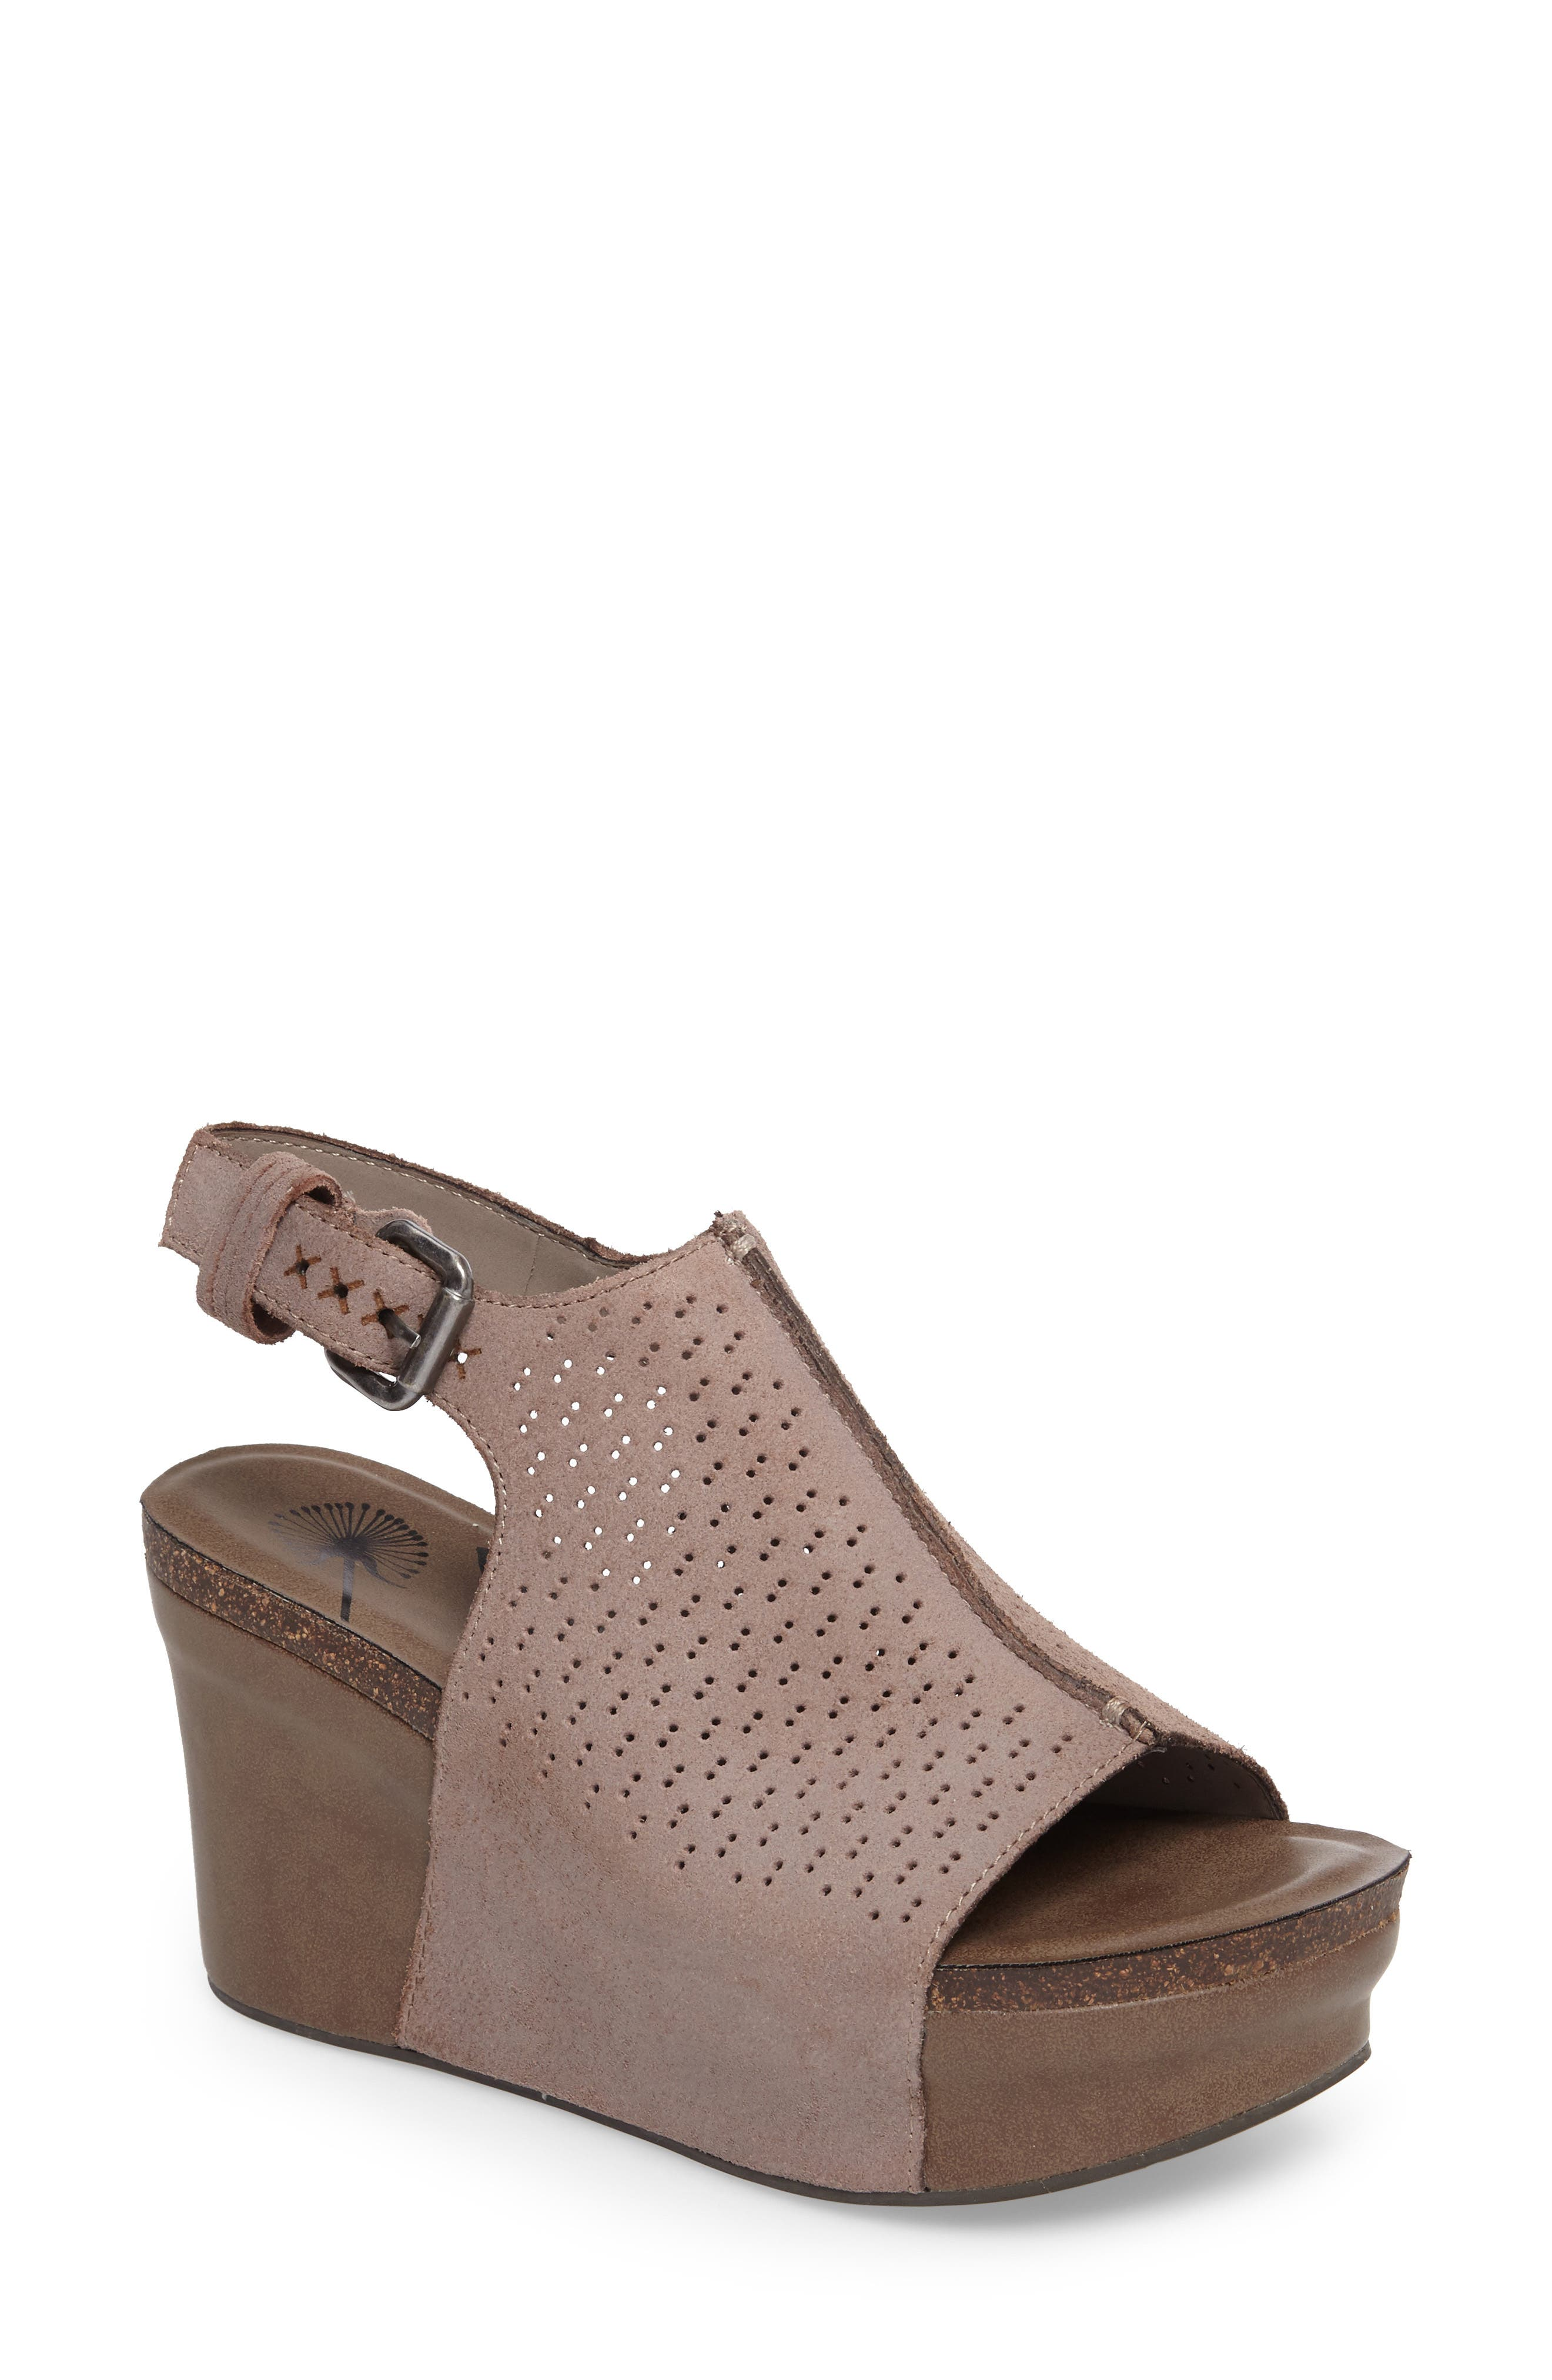 Alternate Image 1 Selected - OTBT Jaunt Platform Wedge Sandal (Women)